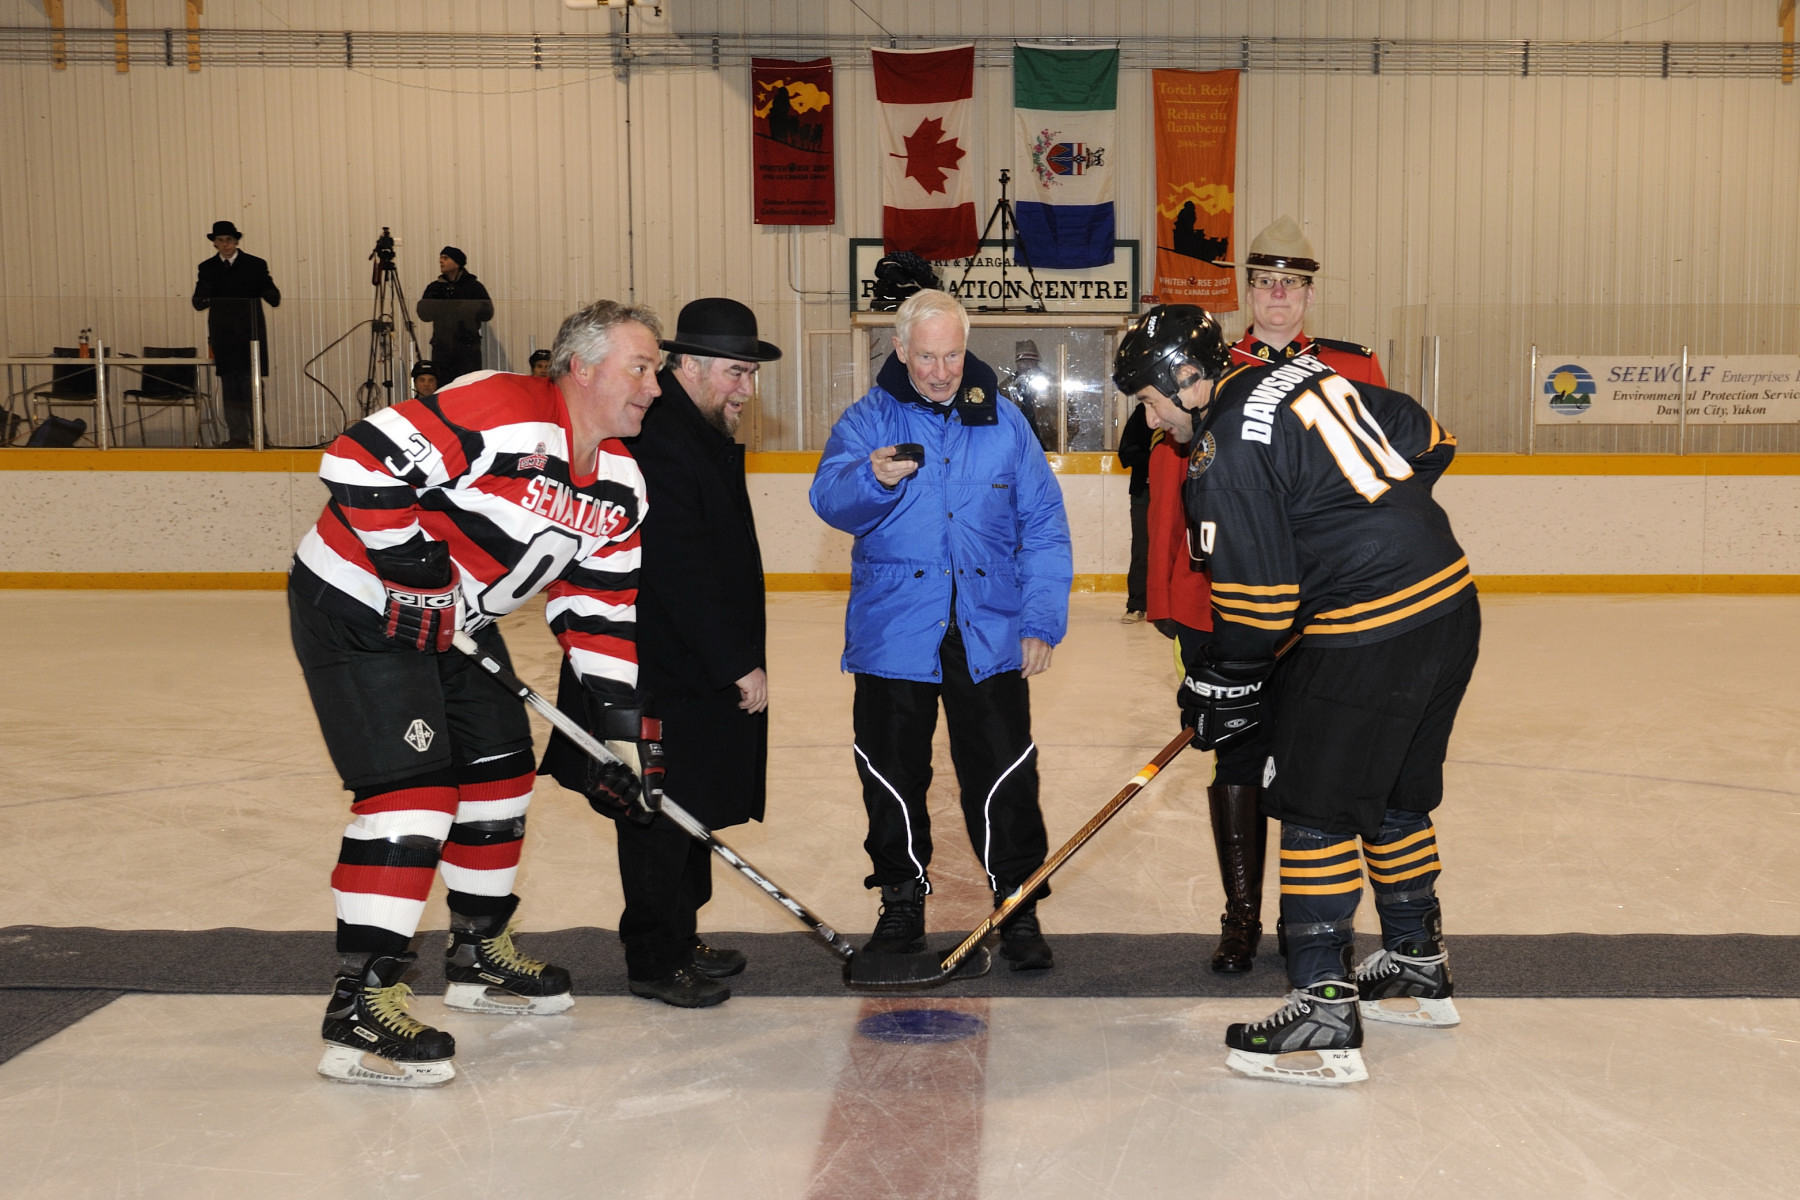 The Governor General then attended the friendly alumni hockey game between the Dawson City Nuggets and the Ottawa Senators Alumni, which was a re-enactment of the January 1905 Stanley Cup Championship game in Ottawa. For this occasion, he did the official puck-drop.